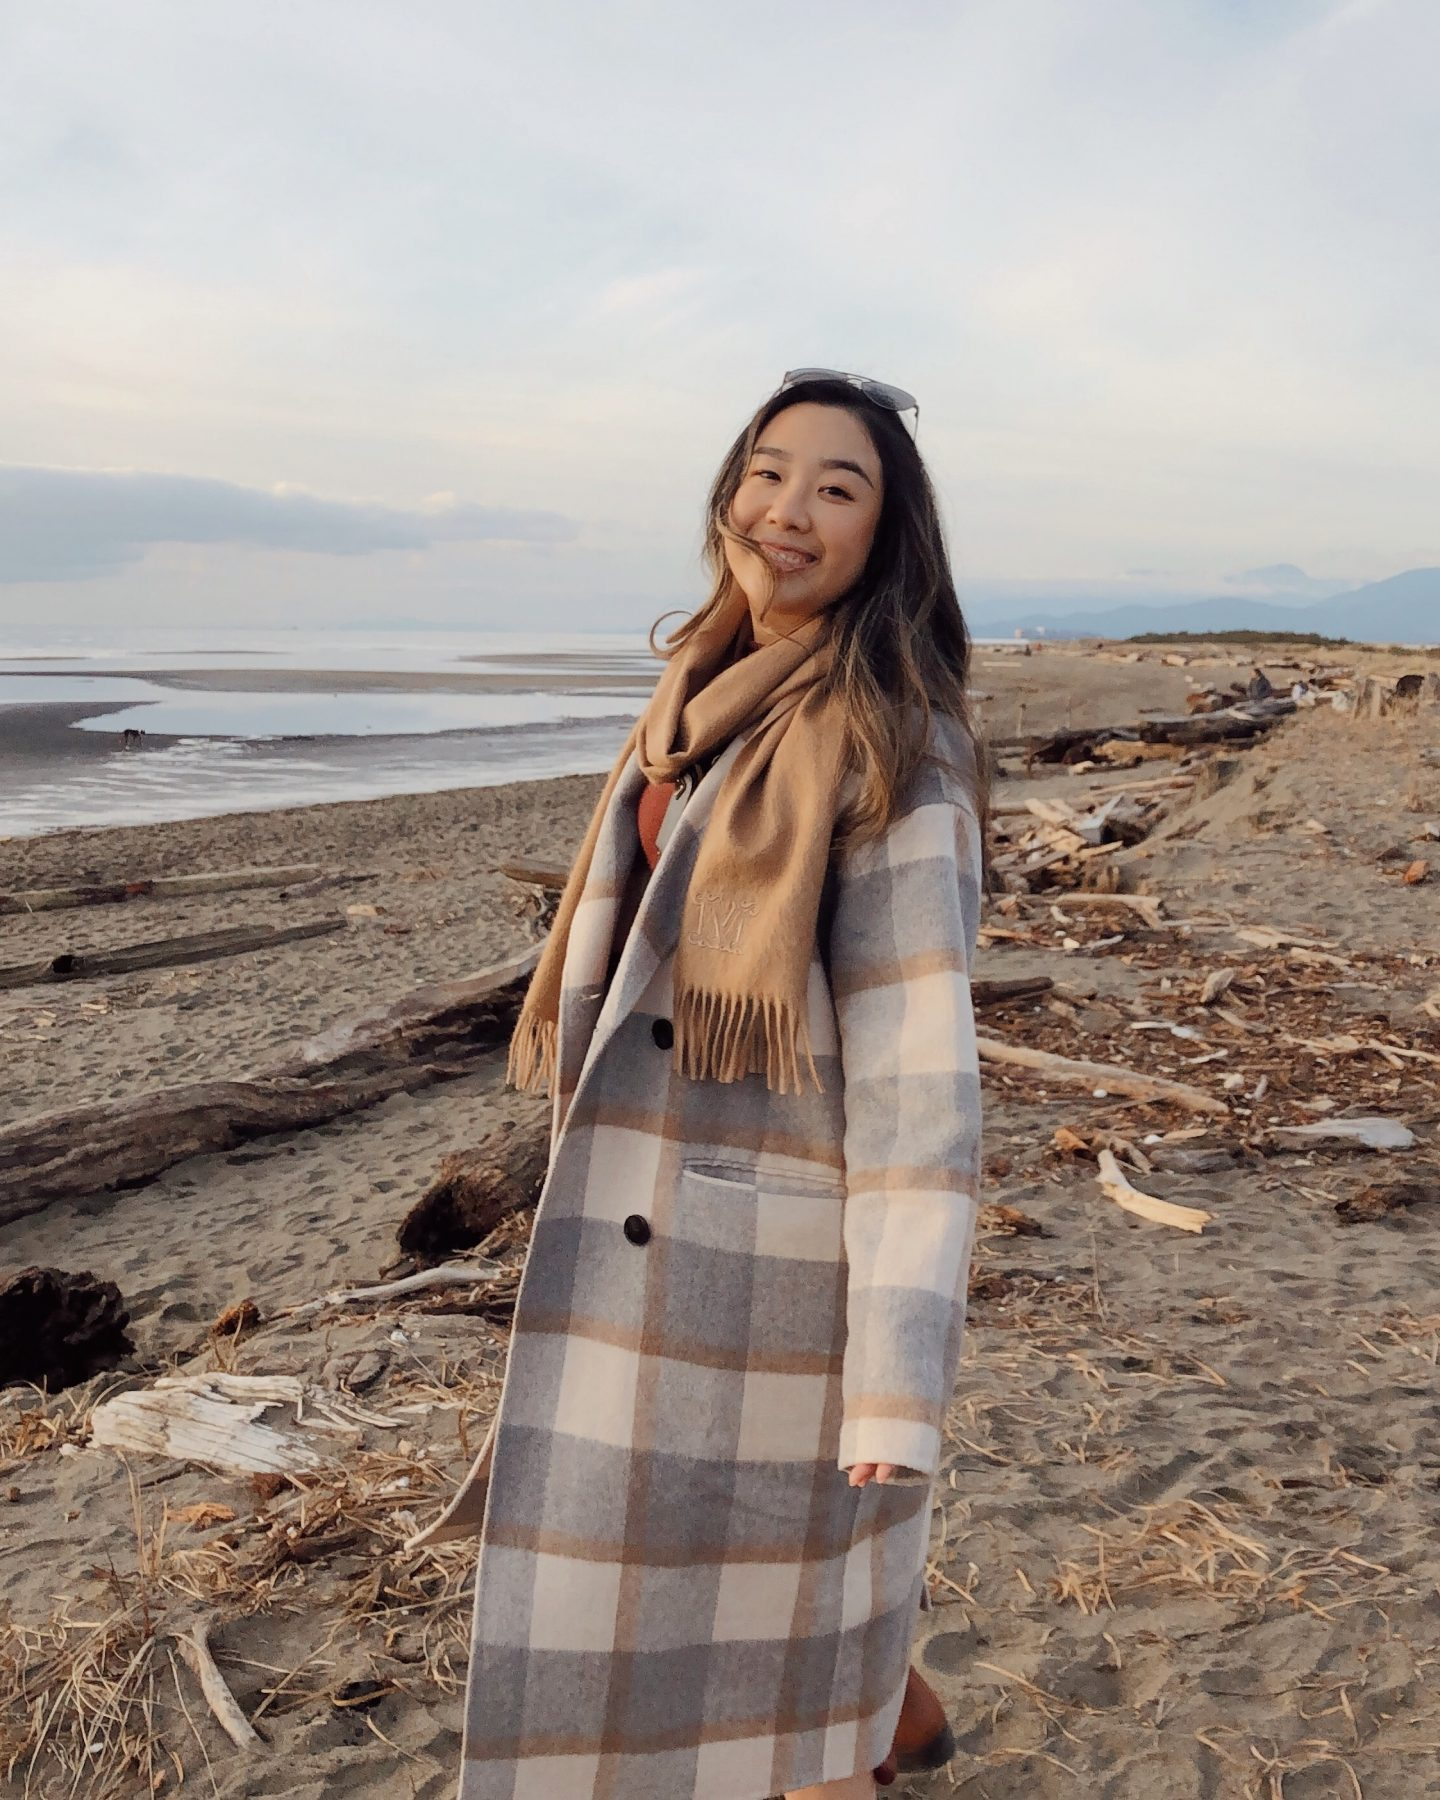 Using my phone to take photos on the beach with my plaid coat | how to take great photos with just your cell phone